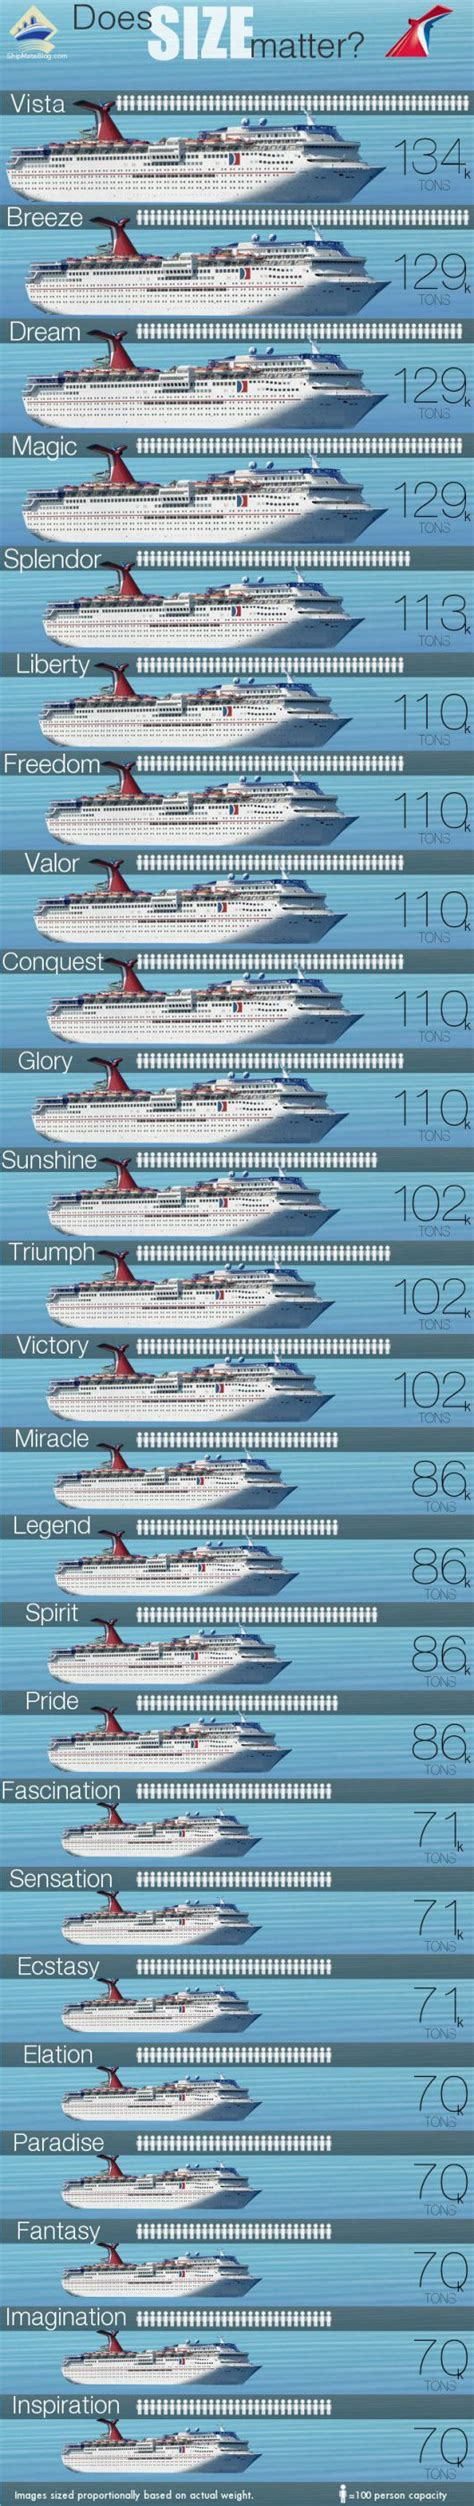 Does Size Matter? Carnival Ship Size Comparison [infographic]